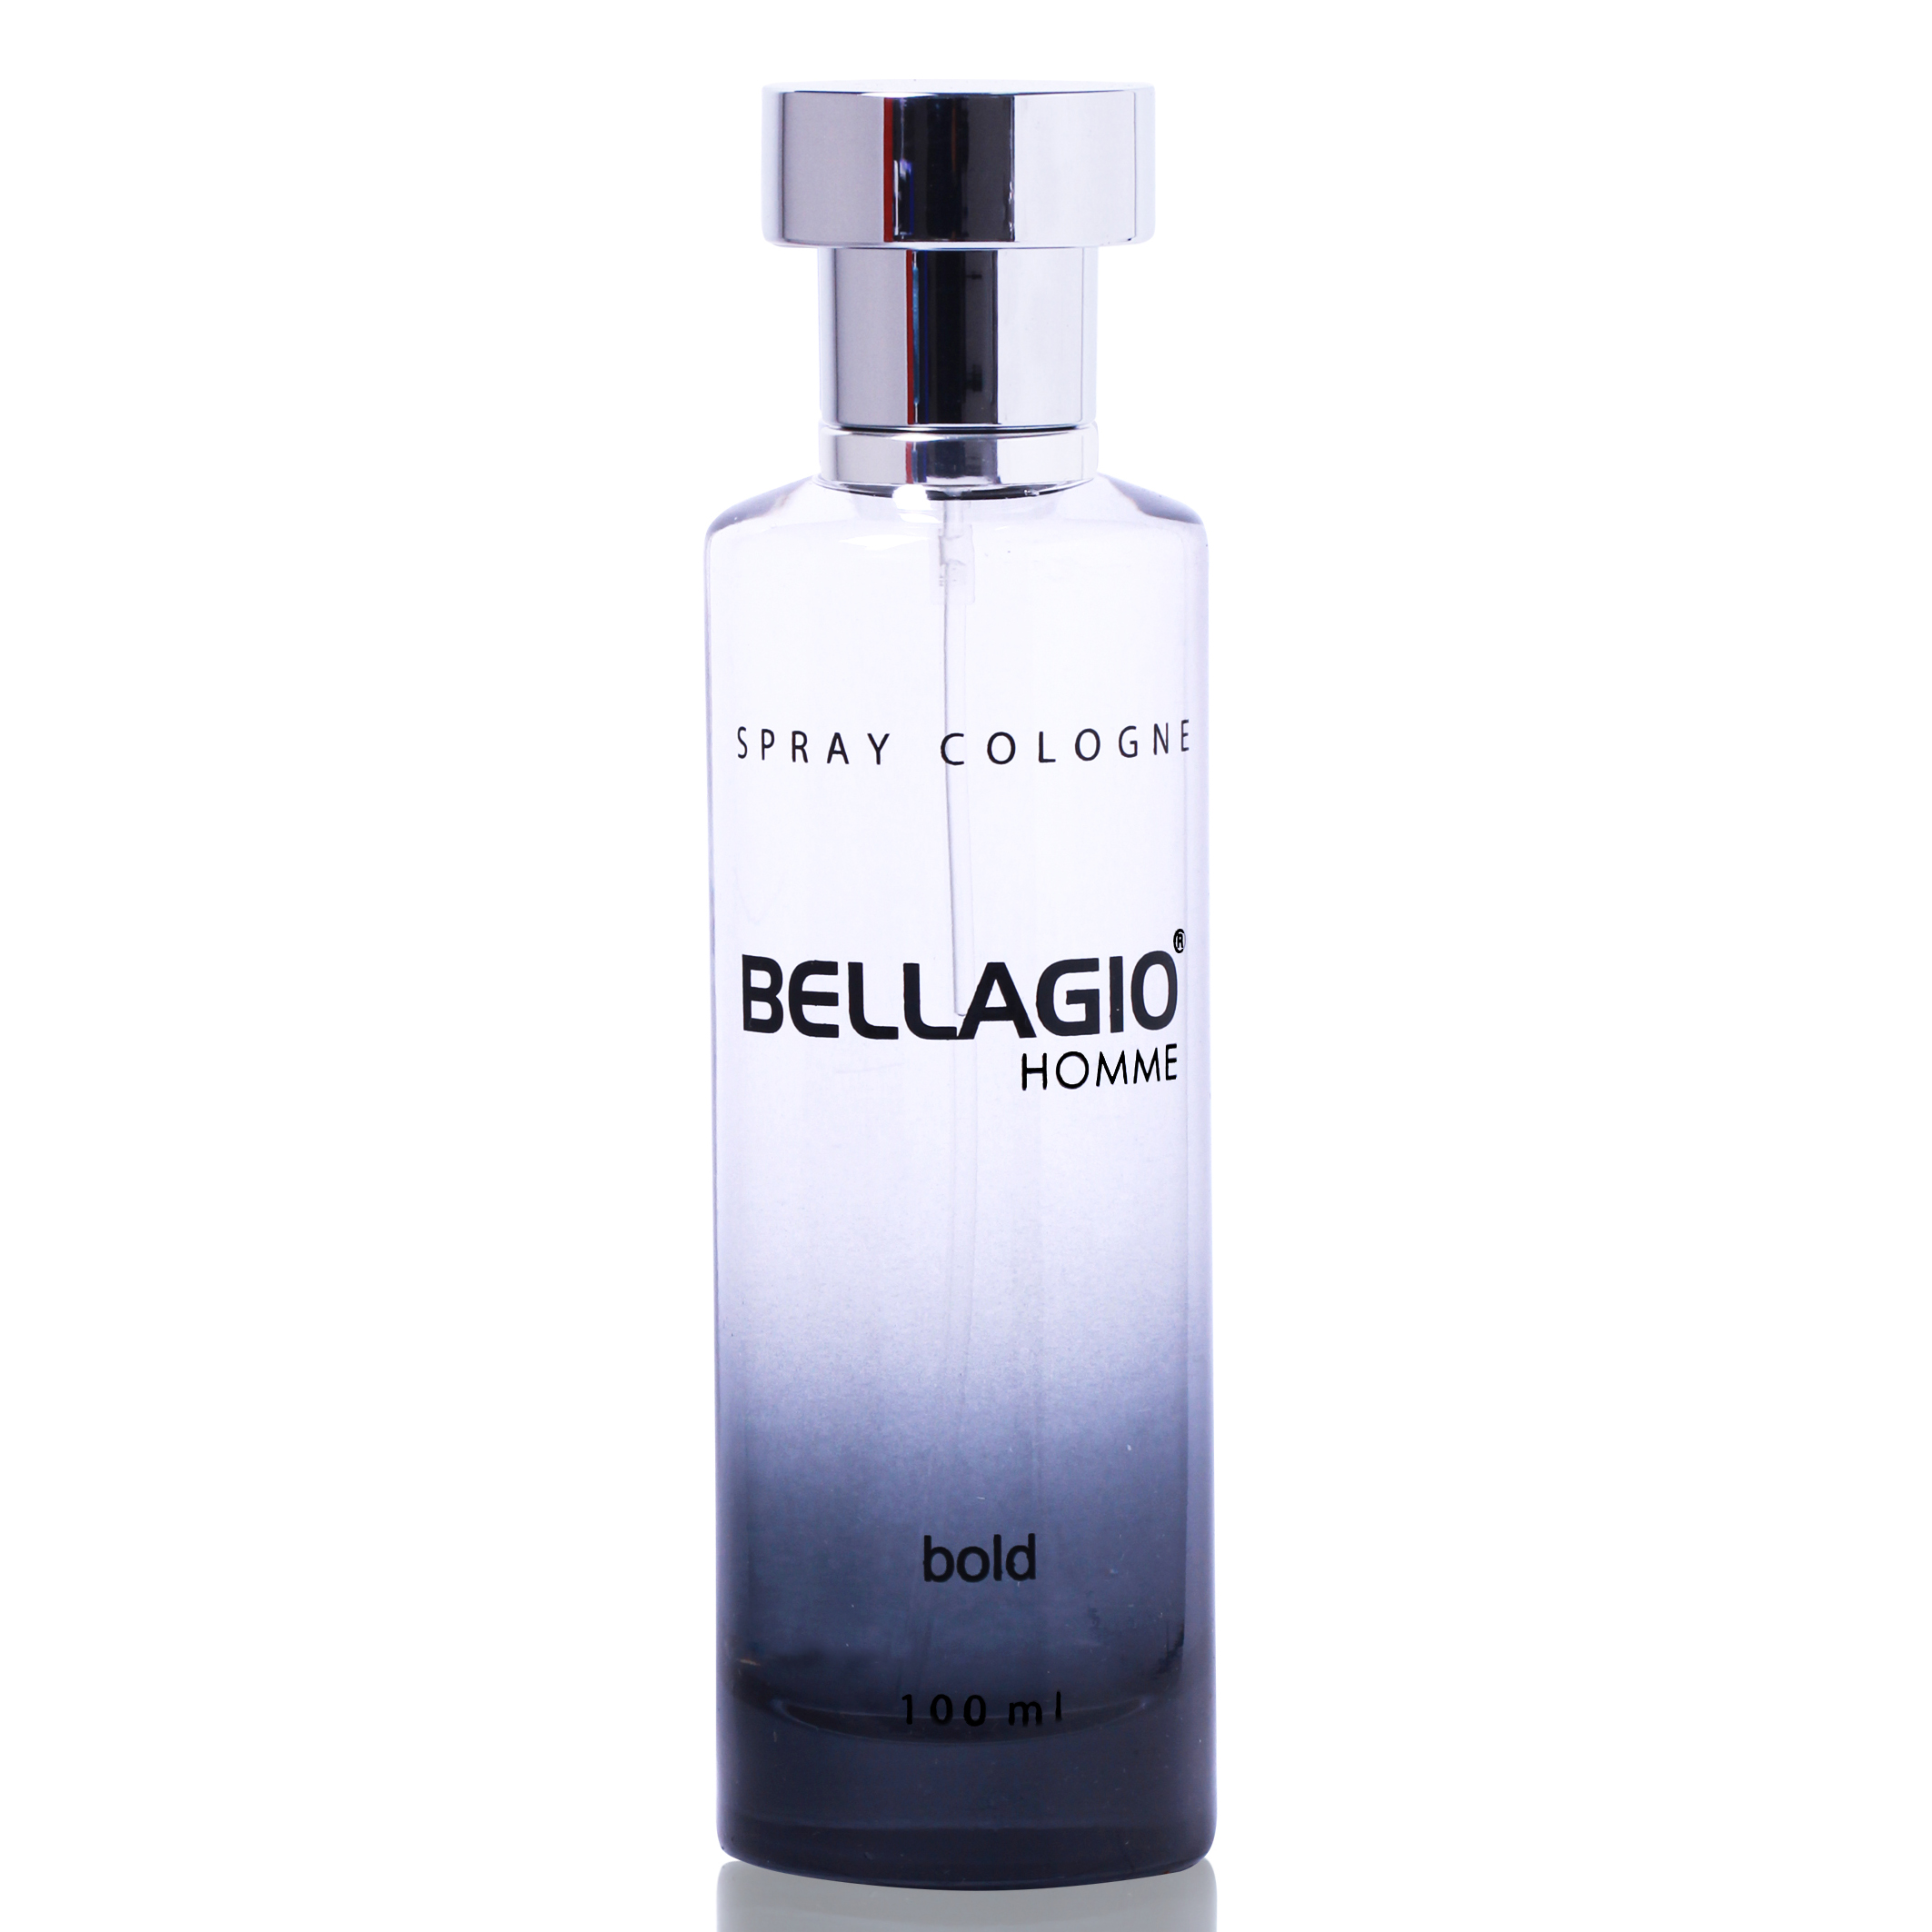 Bellagio Perfume  | Bellagio Spray Cologne Black (Bold) 100ml | gogobli